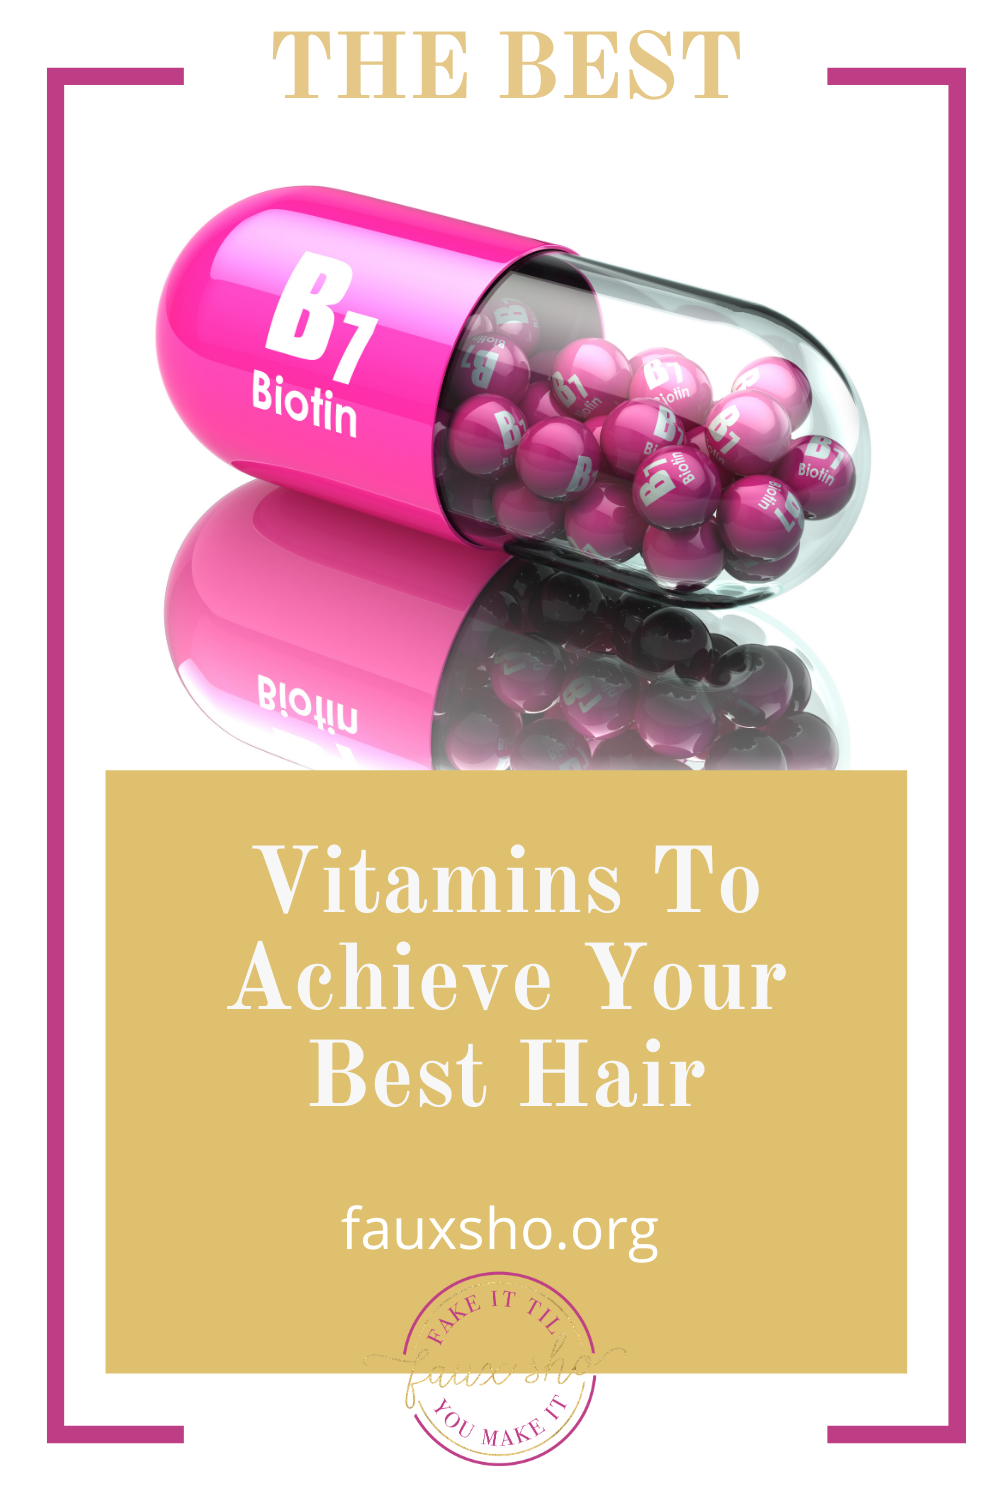 Fauxsho.org is the place to go for everyday solutions! Stop fussing with dead, lifeless hair. Check out these essential vitamins you should be taking to keep your hair long, strong, and healthy!